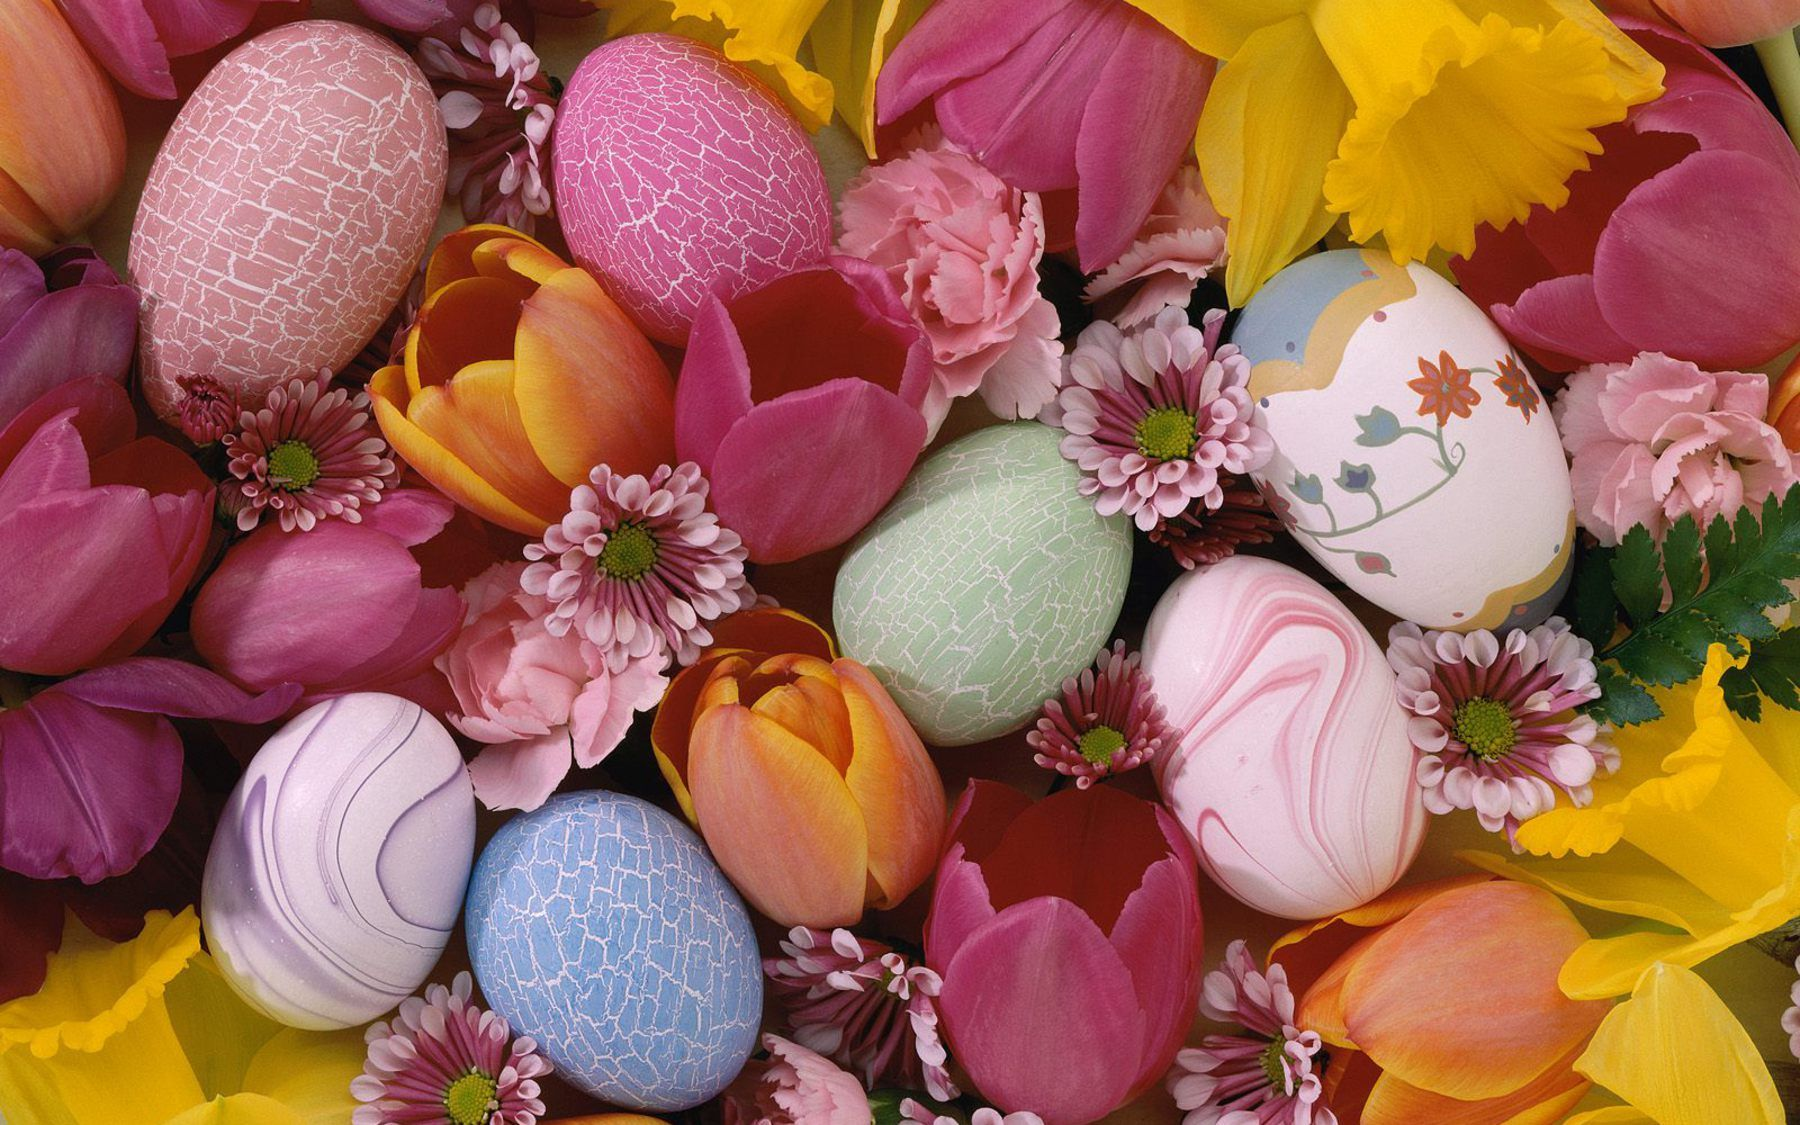 1000+ images about Easter Wallpapers on Pinterest | Funny bunnies ...